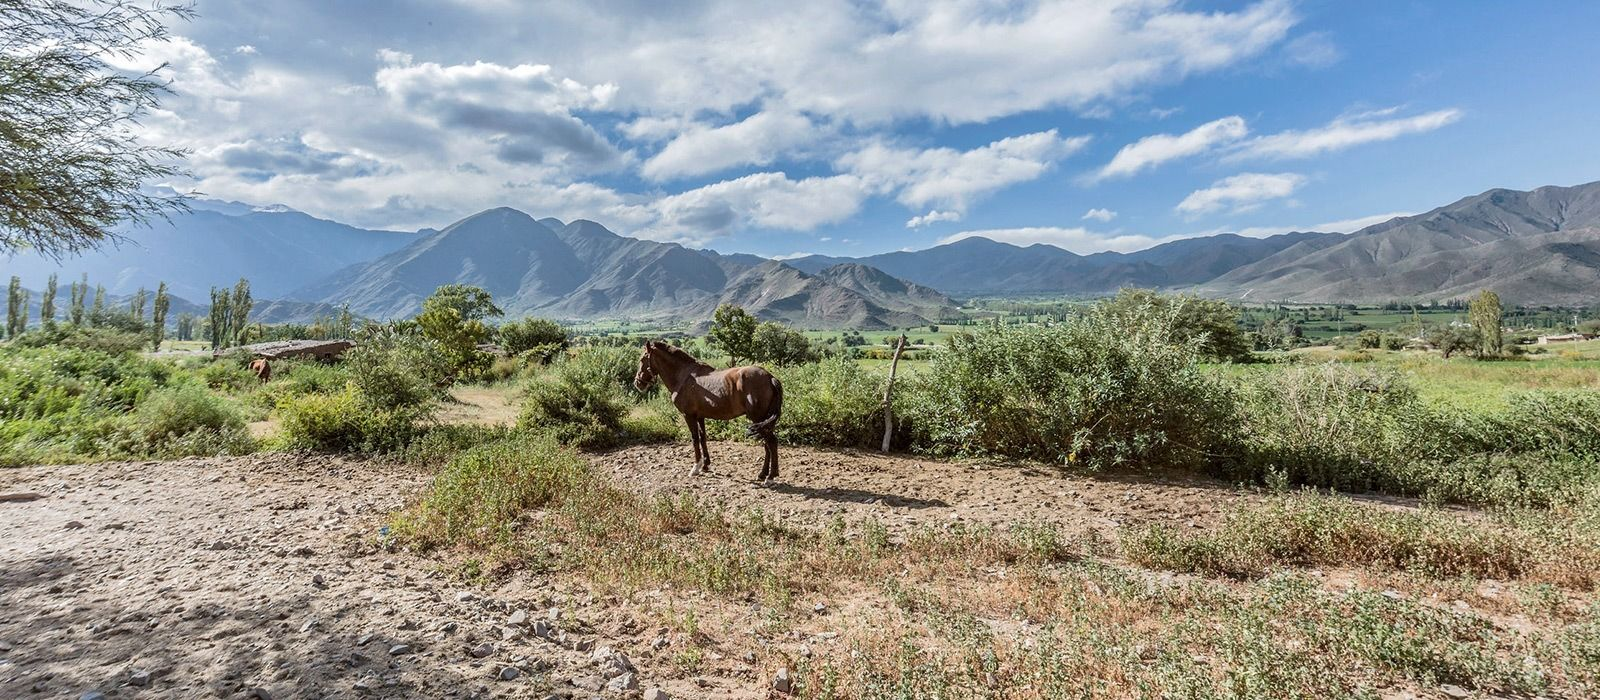 Argentina: Landscapes and Traditions of the North Tour Trip 3